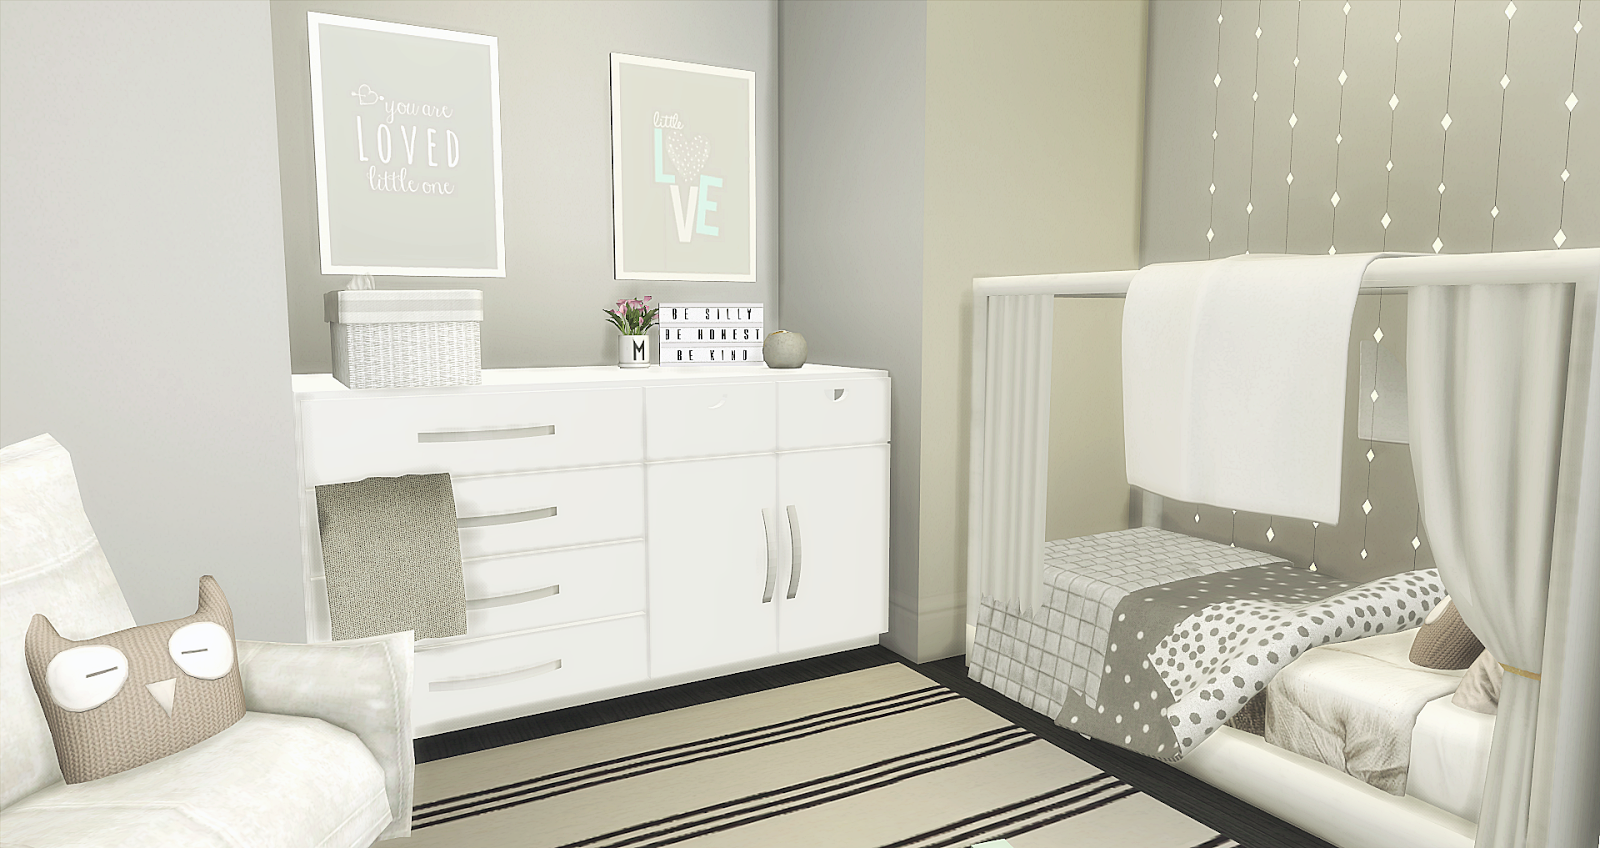 Amelia S Room Toddler Bedroom: L I N E Y S I M S: Unisex Toddlerroom